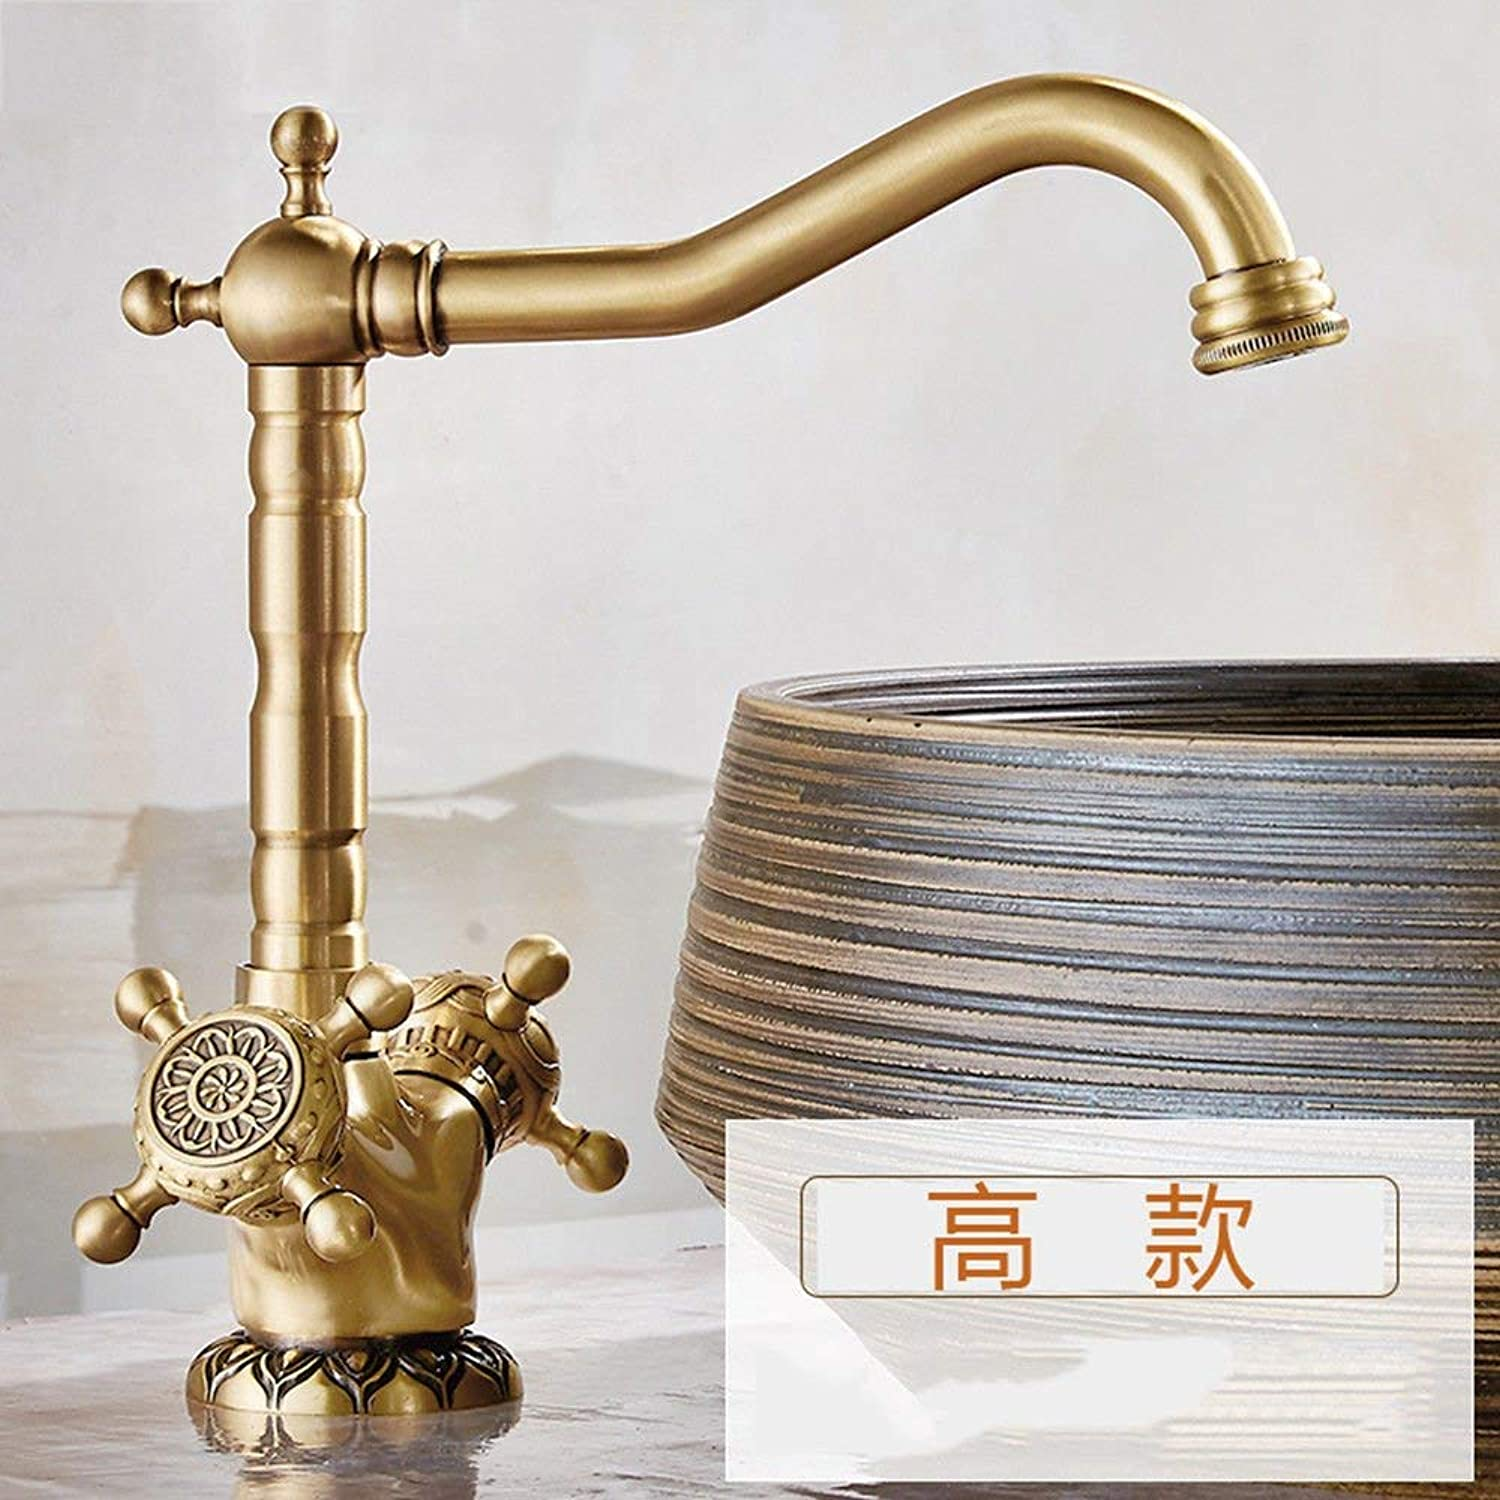 Oudan The copper-continental basin faucet copper Antique Art basin faucet bathroom hot and cold water faucets antique table basin taps can be redated 360 degrees, high (color   High)